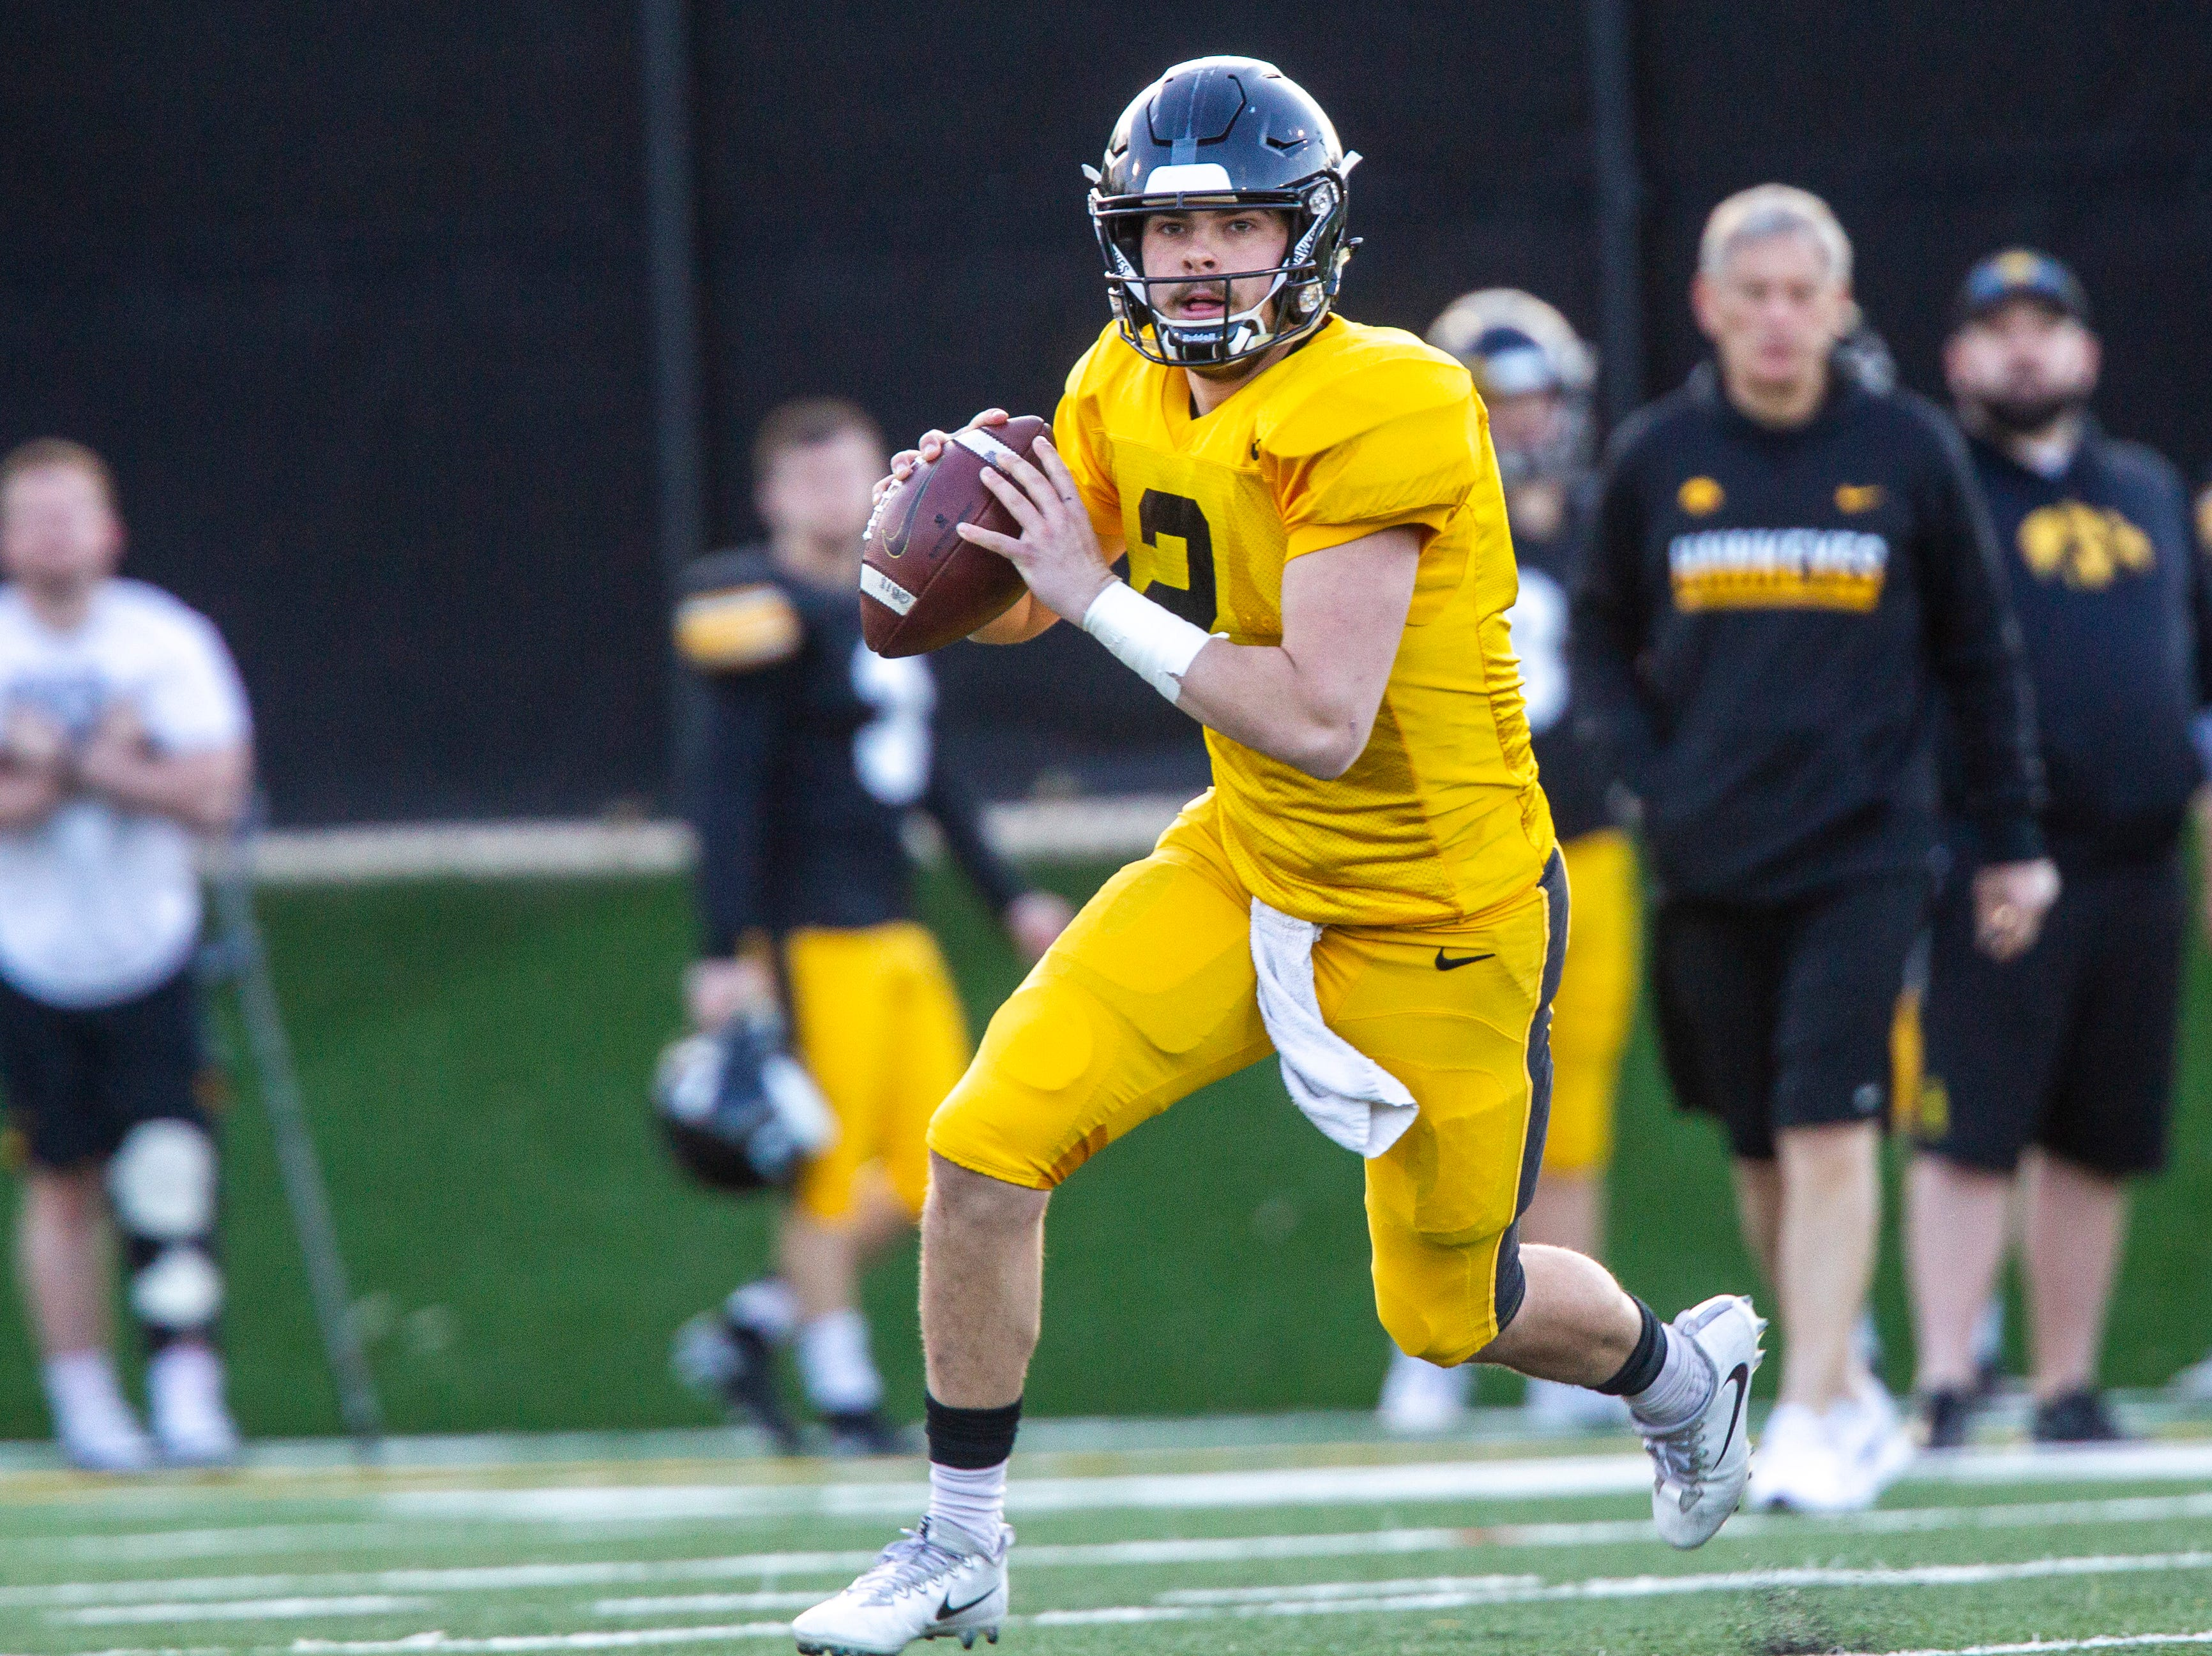 Iowa quarterback Peyton Mansell (2) rolls out to pass during the final spring football practice, Friday, April 26, 2019, at the University of Iowa outdoor practice facility in Iowa City, Iowa.